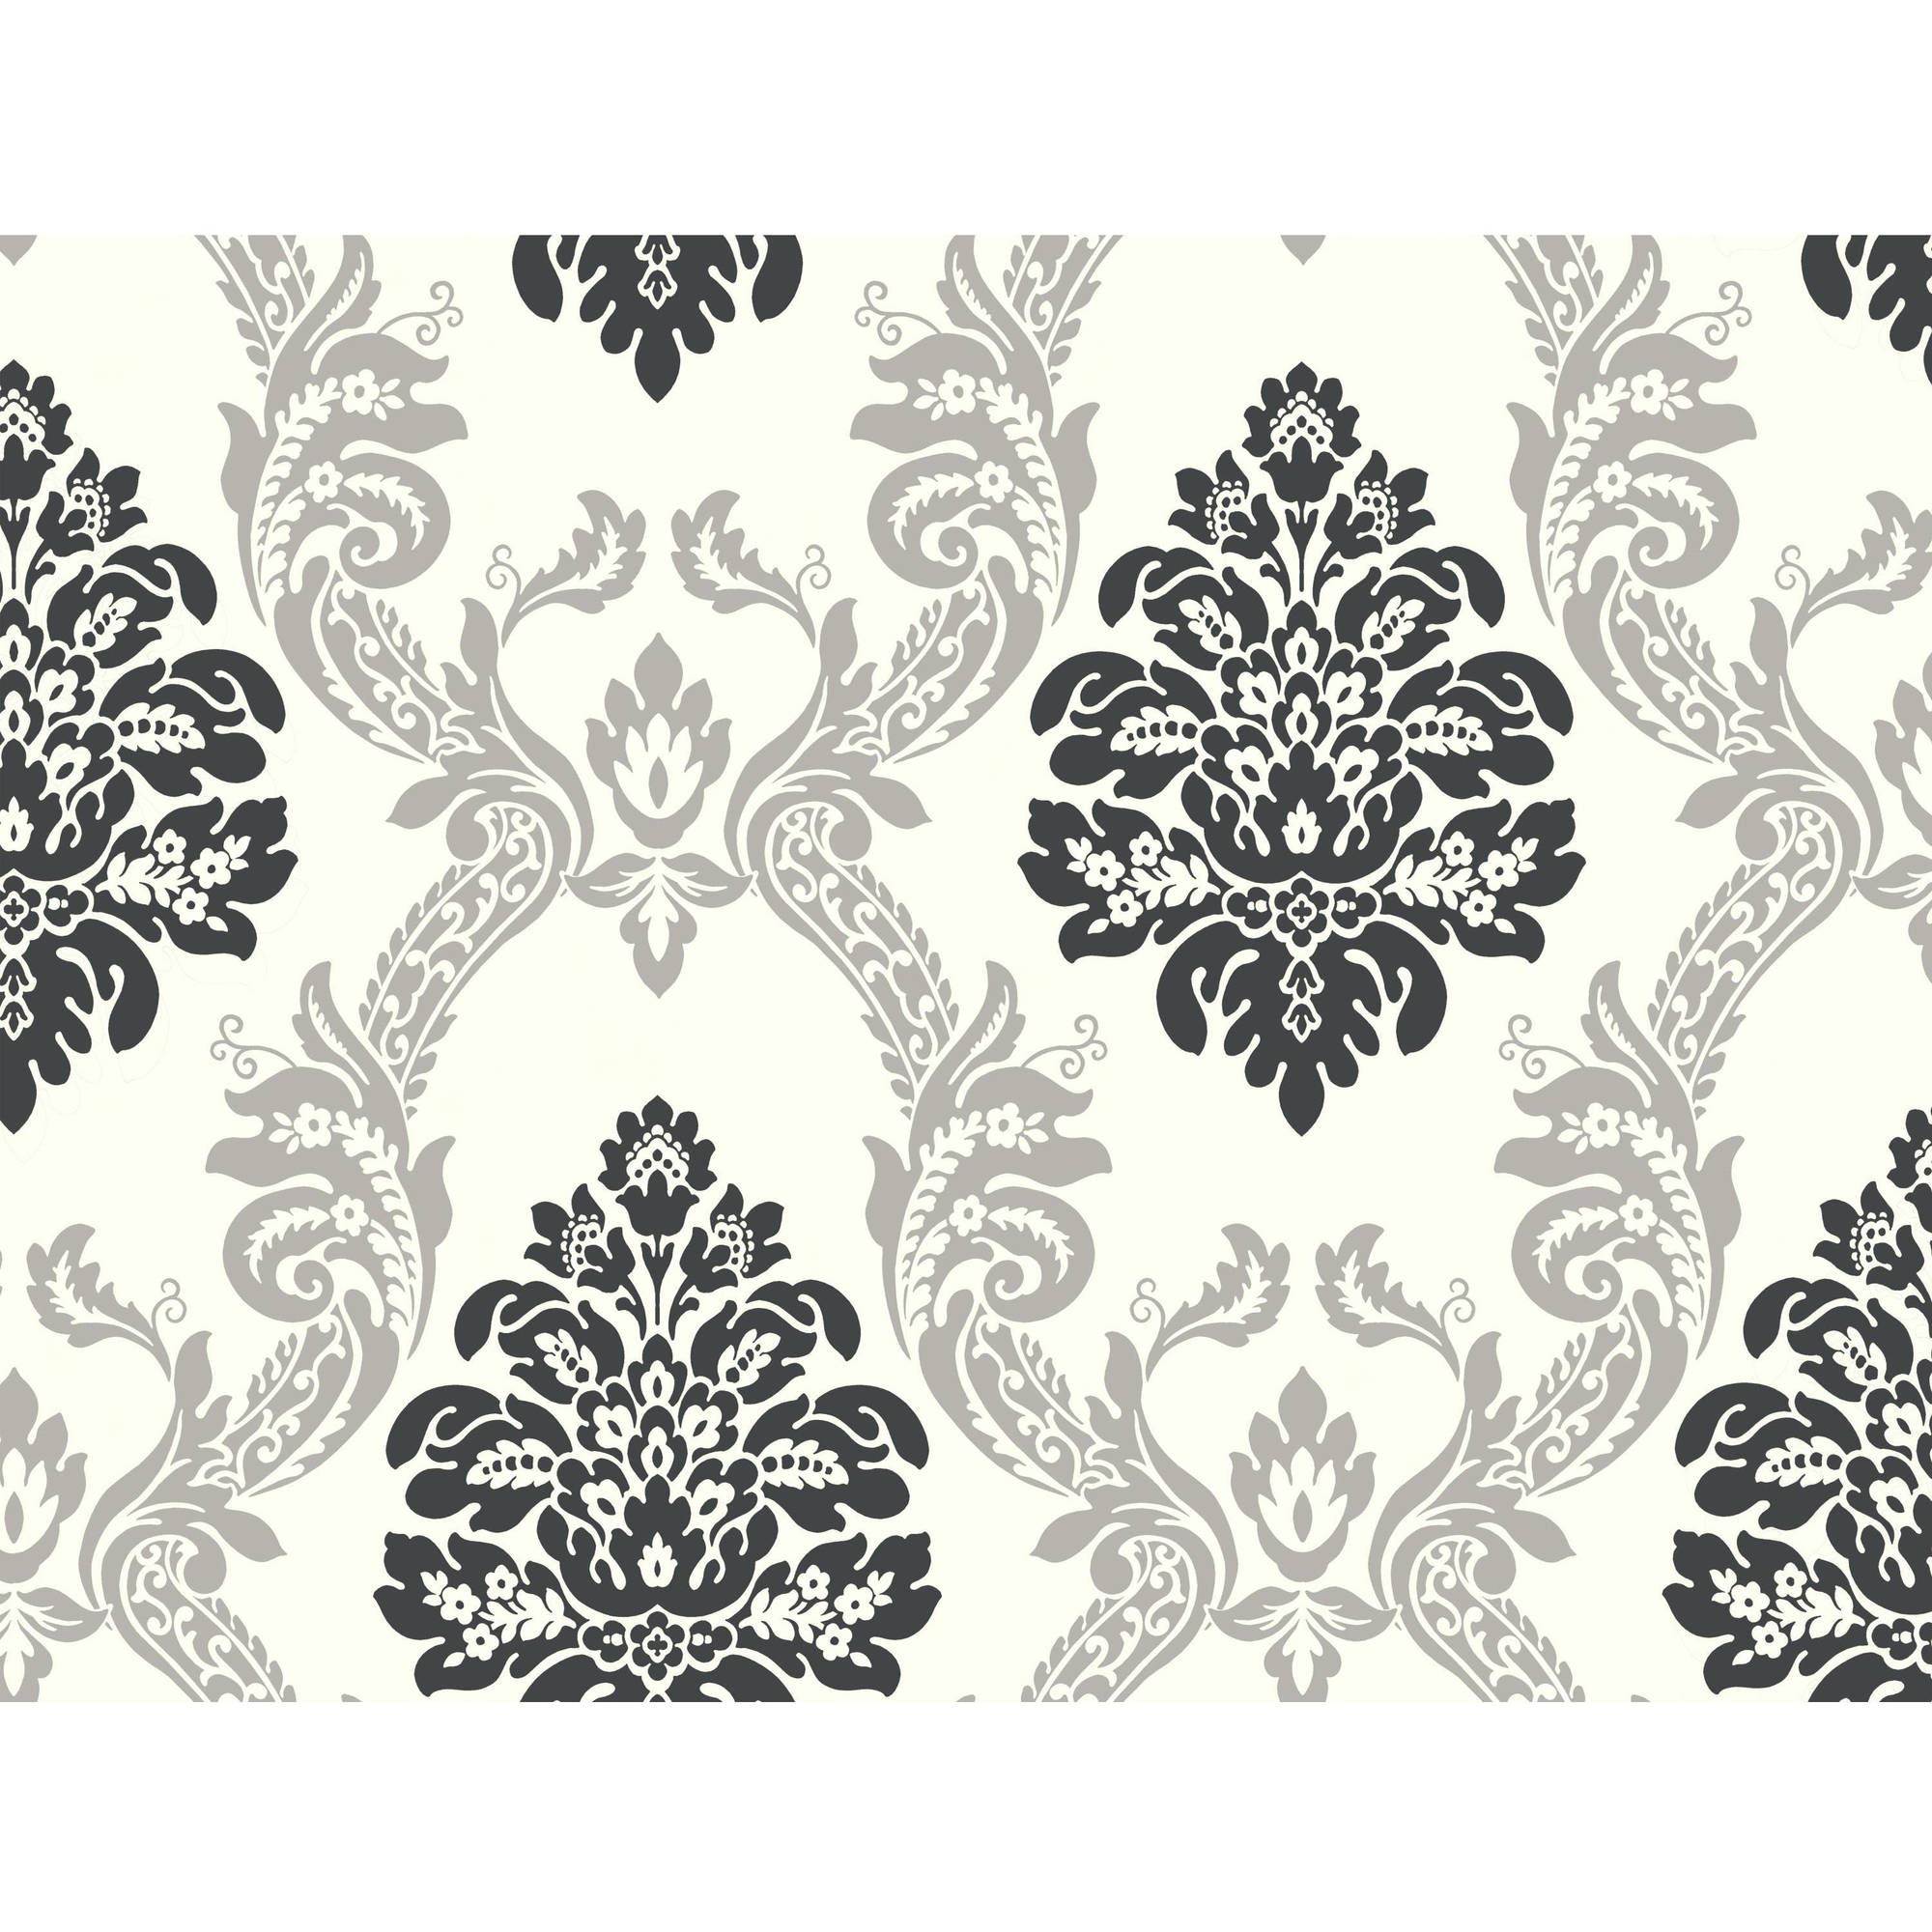 Black & White Ogee Damask Wallpaper